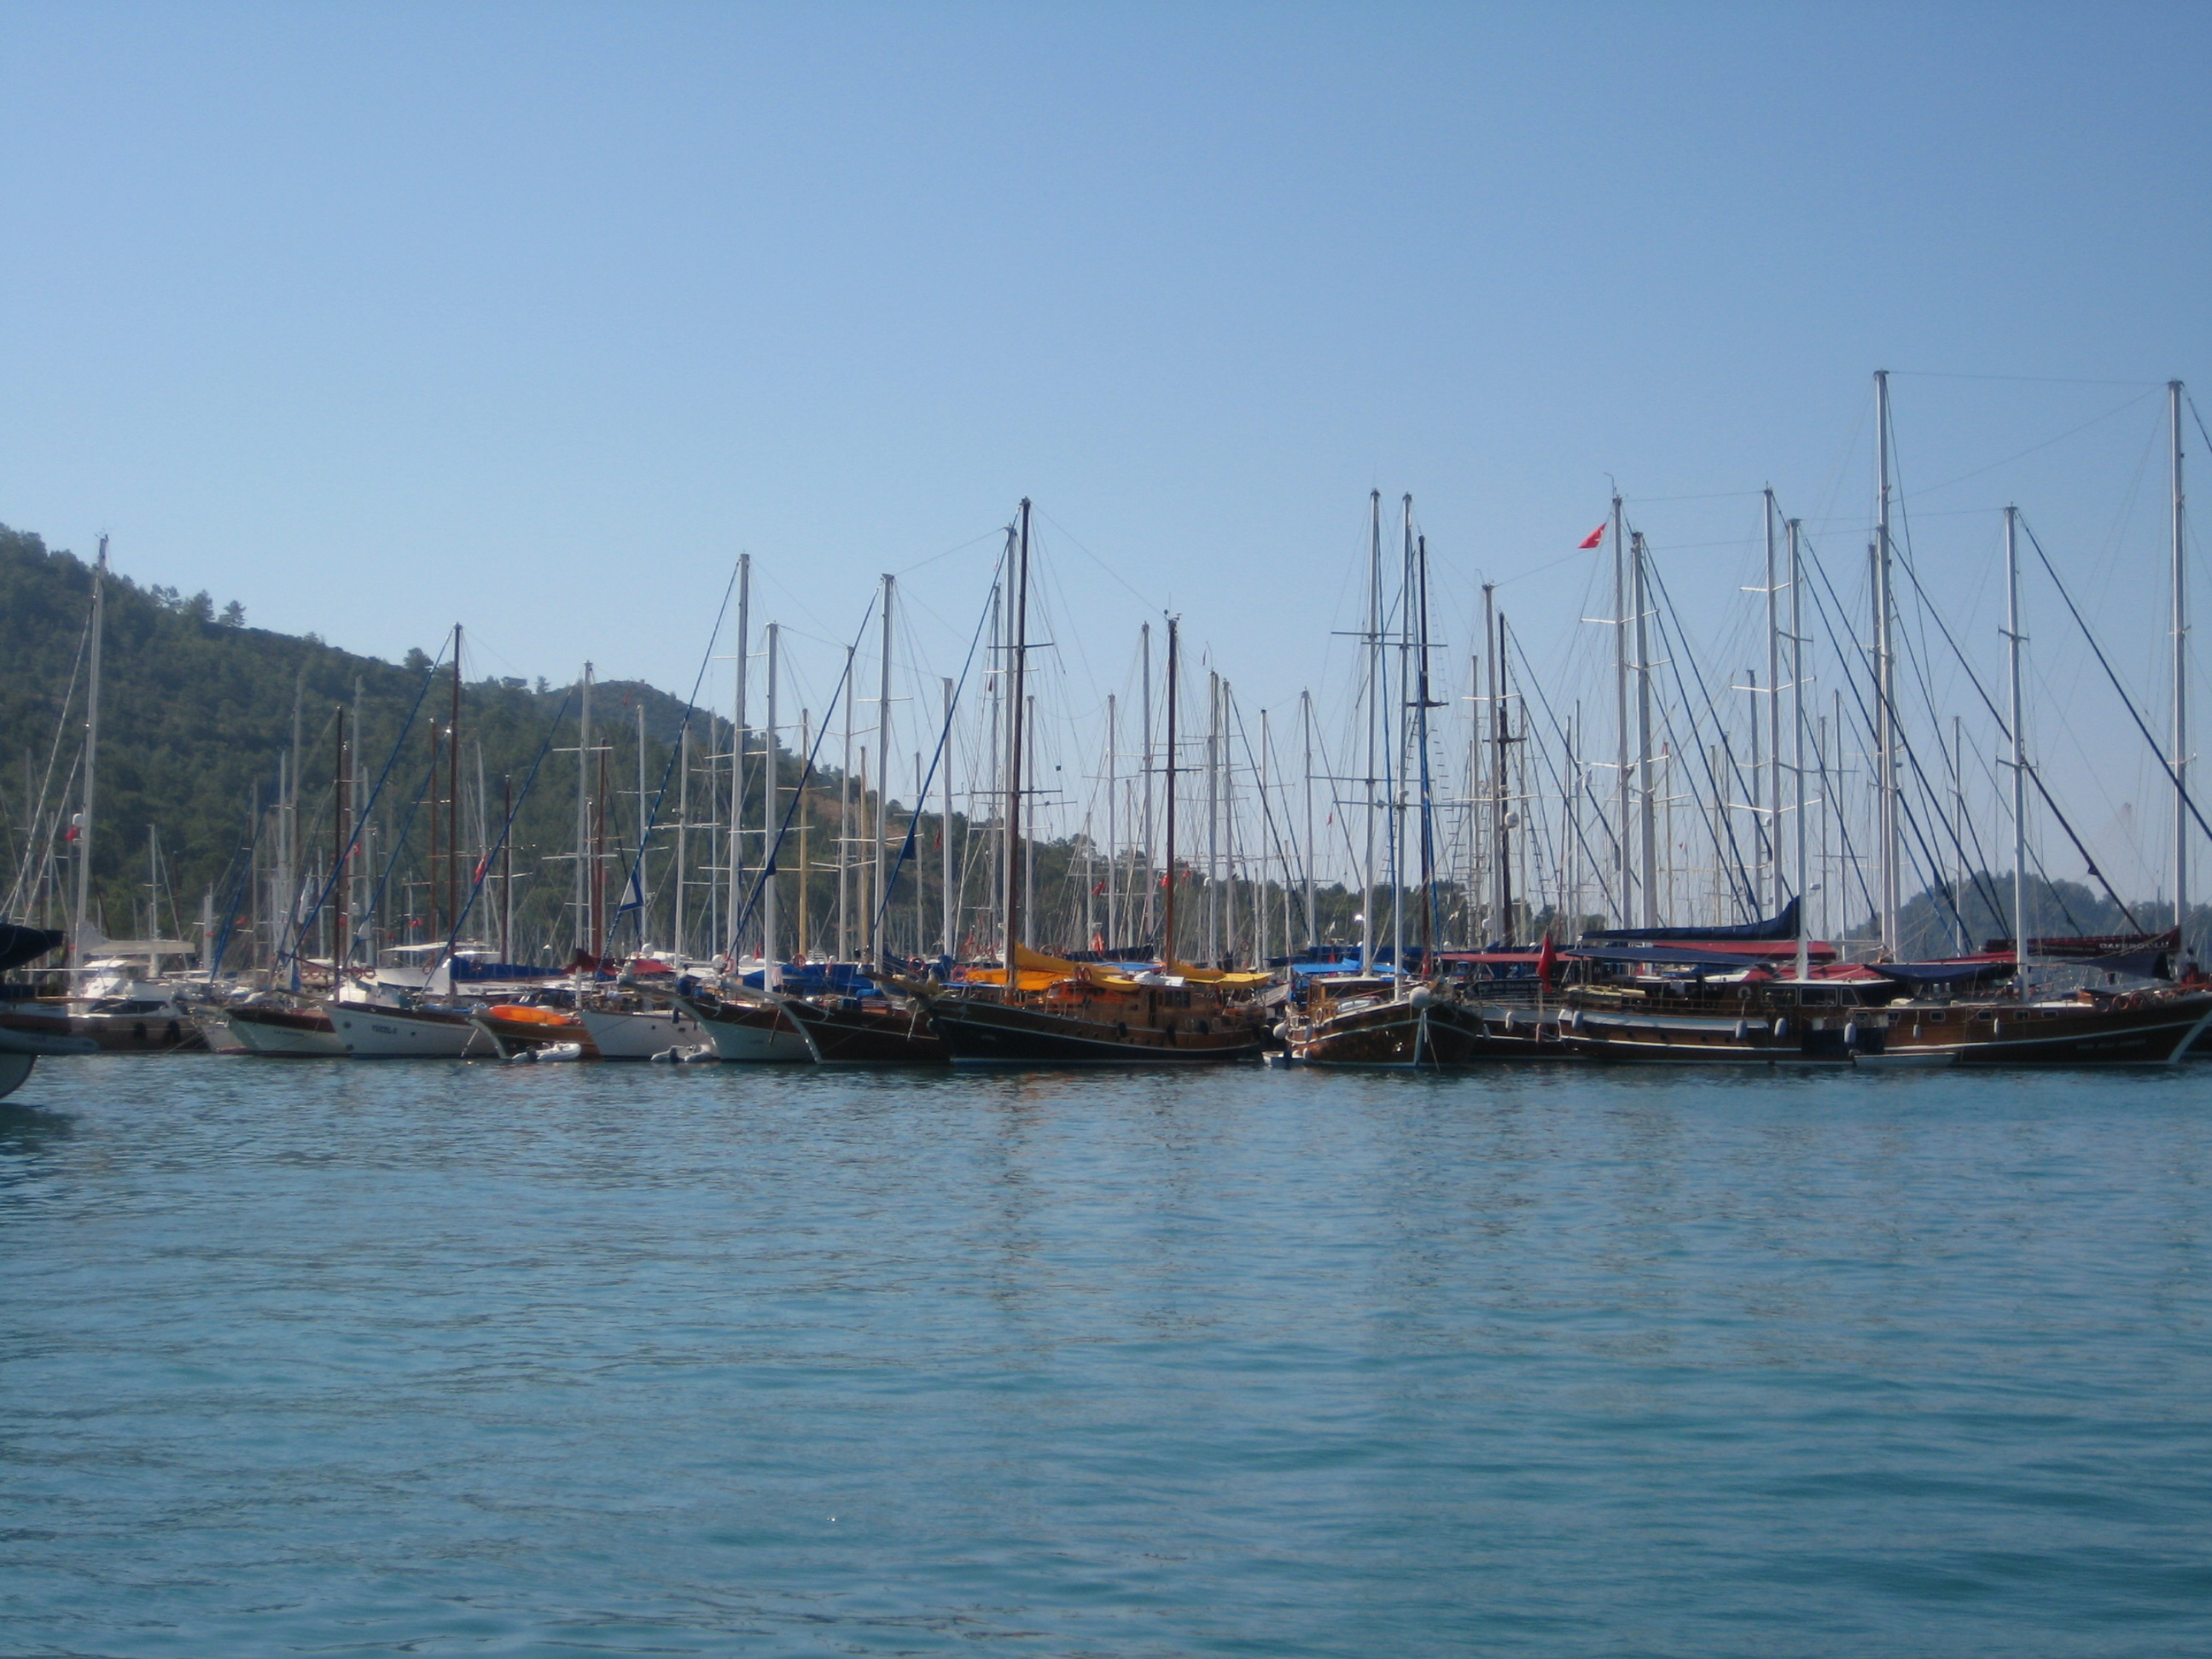 The harbor in Gocek is where we boarded our boat, the Ercan.